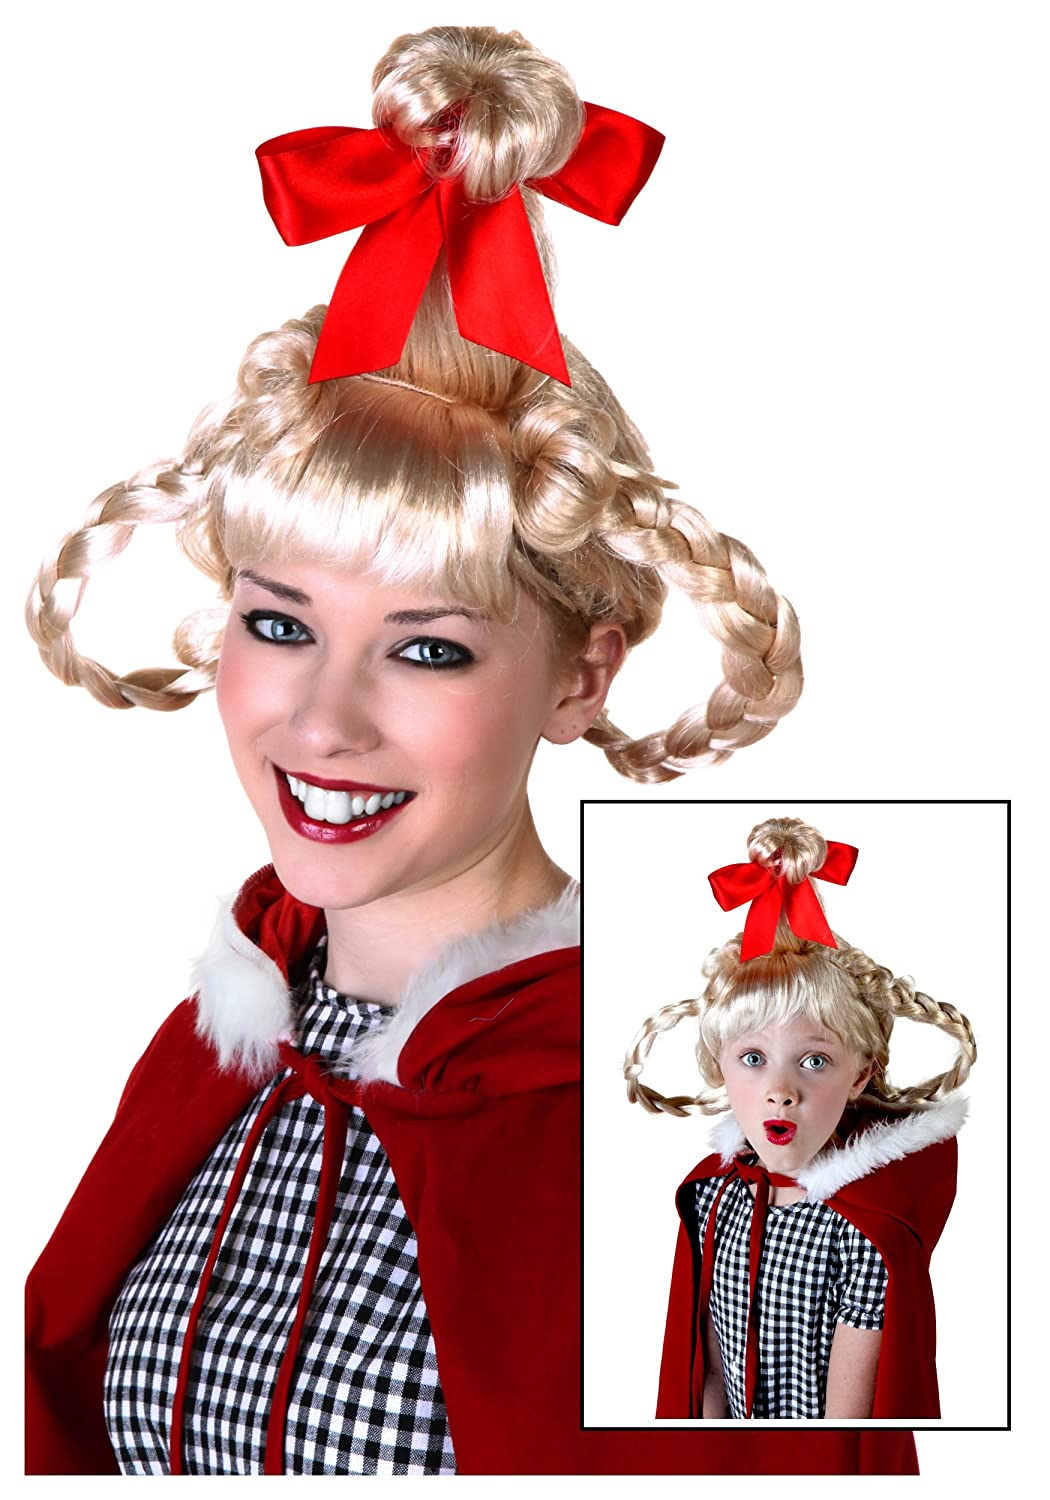 Gallery images and information: Whoville Hair Tutorial